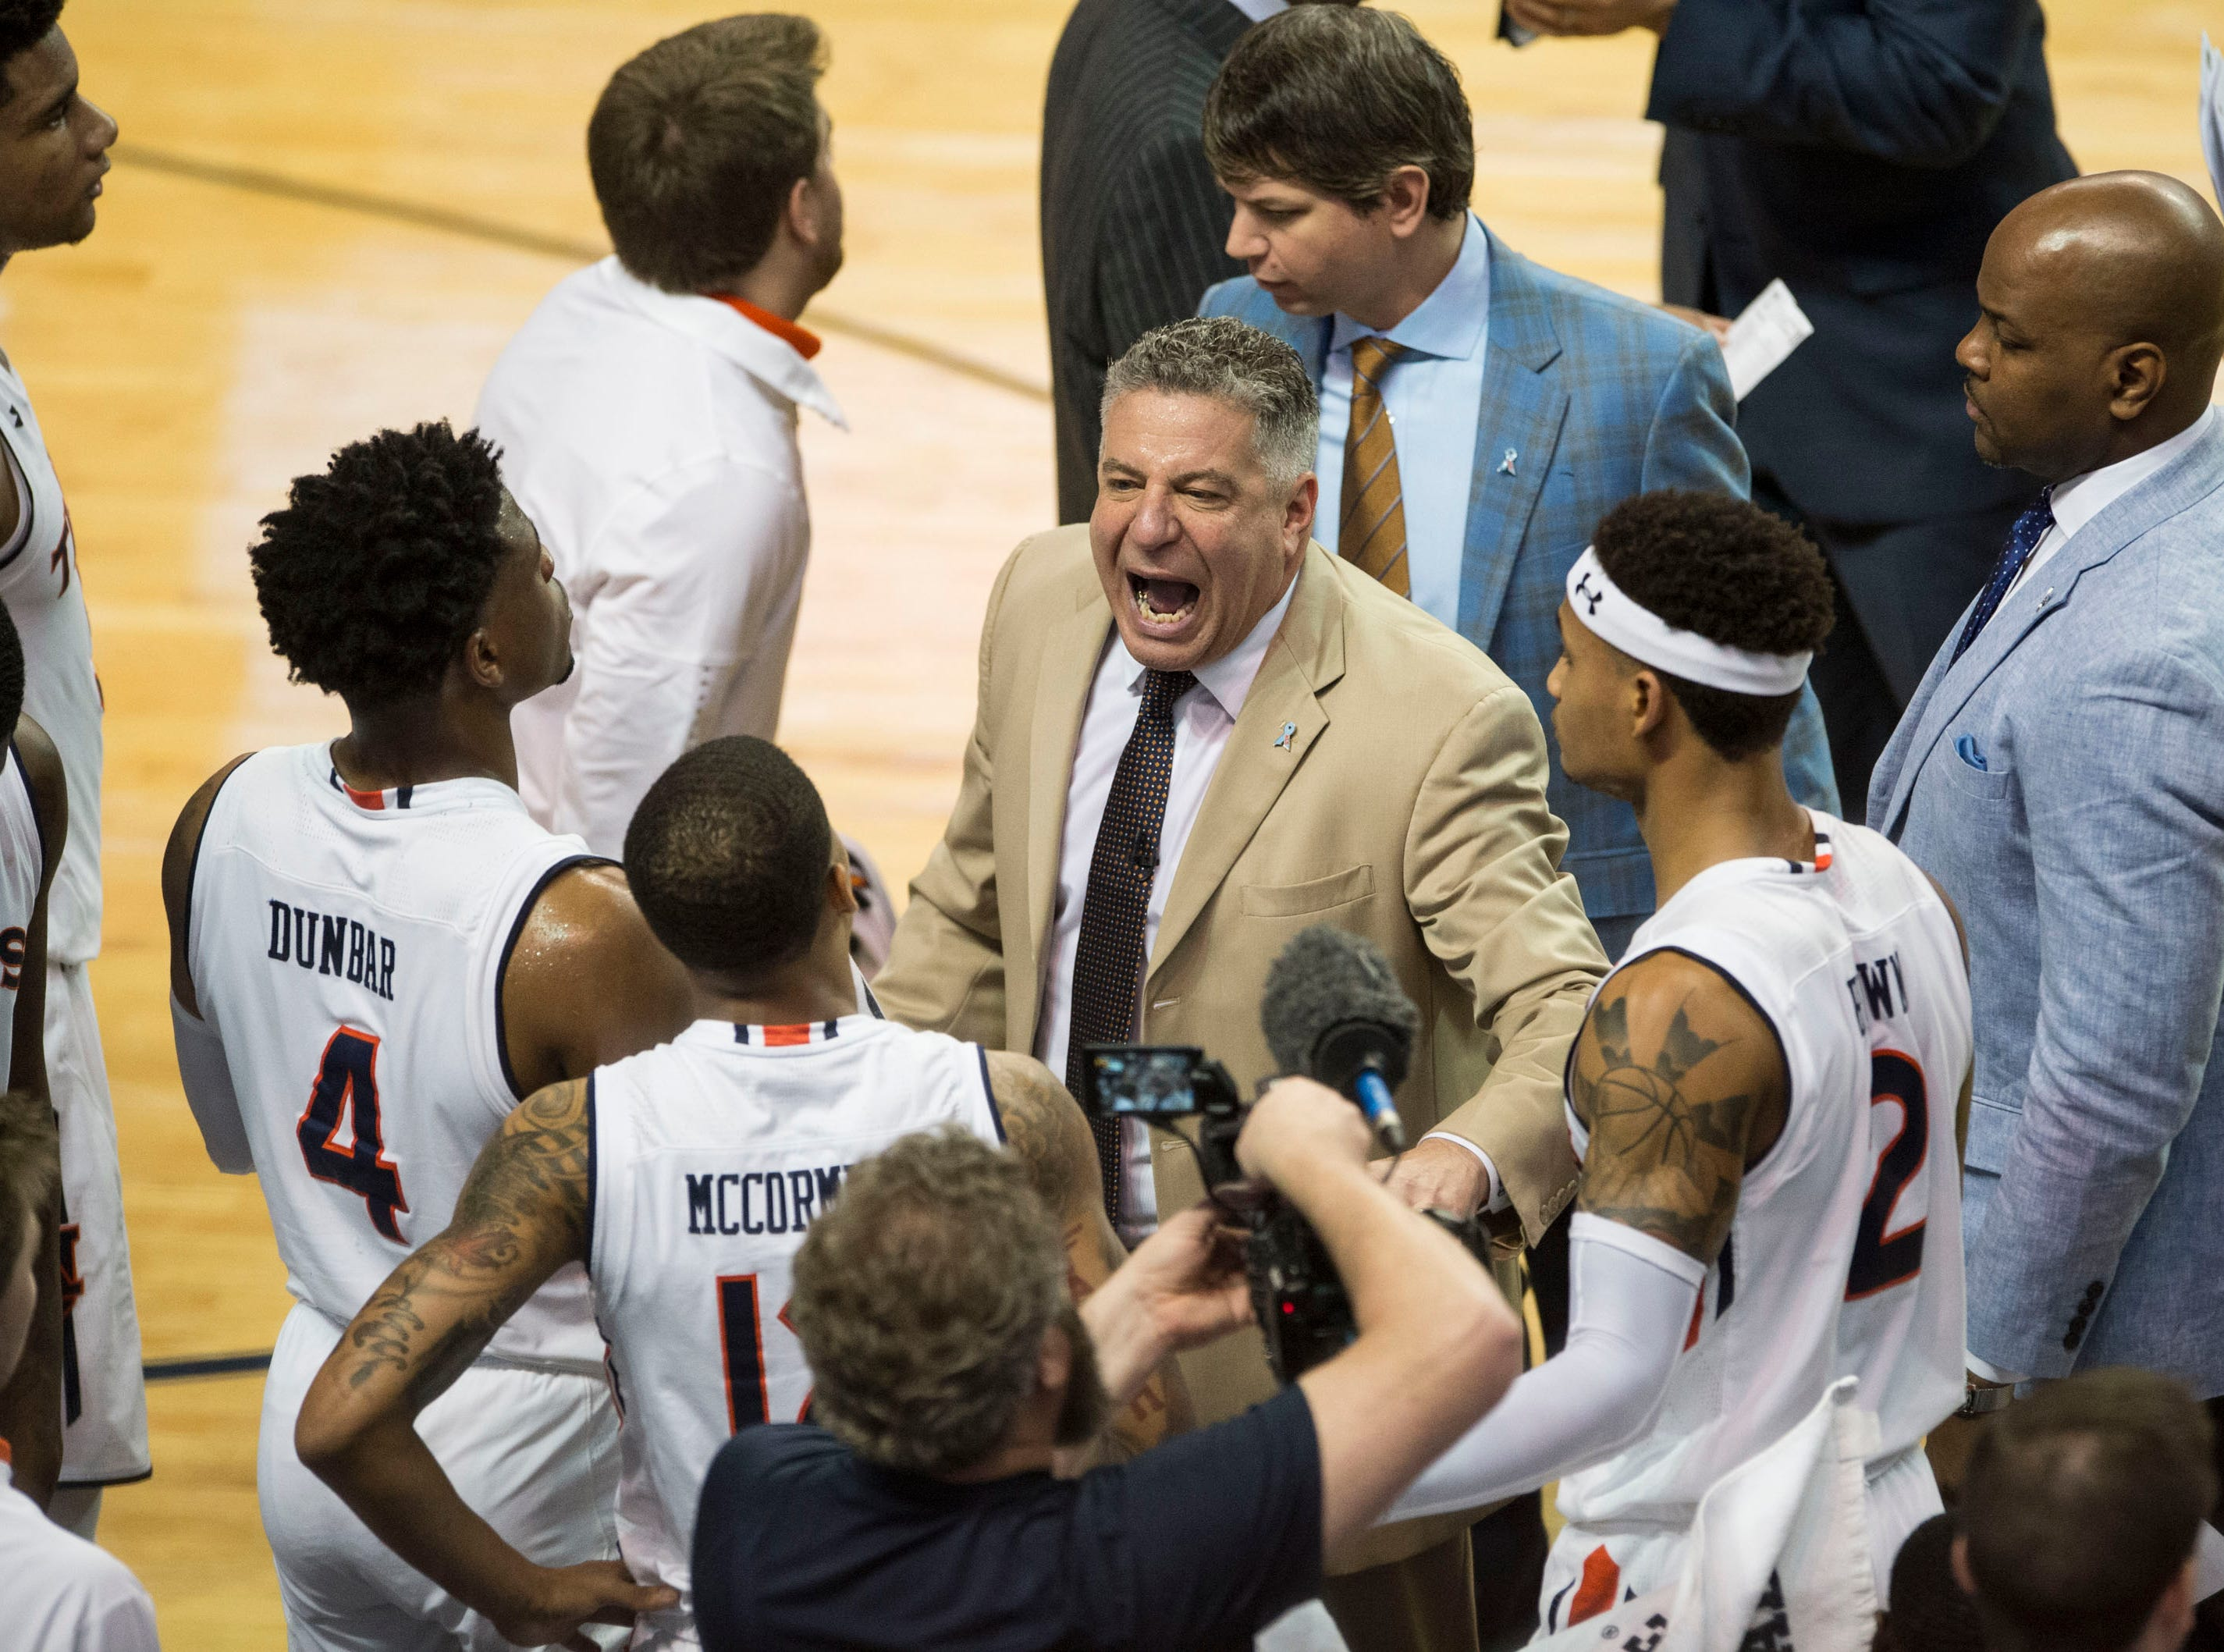 Auburn head coach Bruce Pearl talks with his team during a timeout at Auburn Arena in Auburn, Ala., on Saturday, March 9, 2019. Auburn defeated Tennessee 84-80.